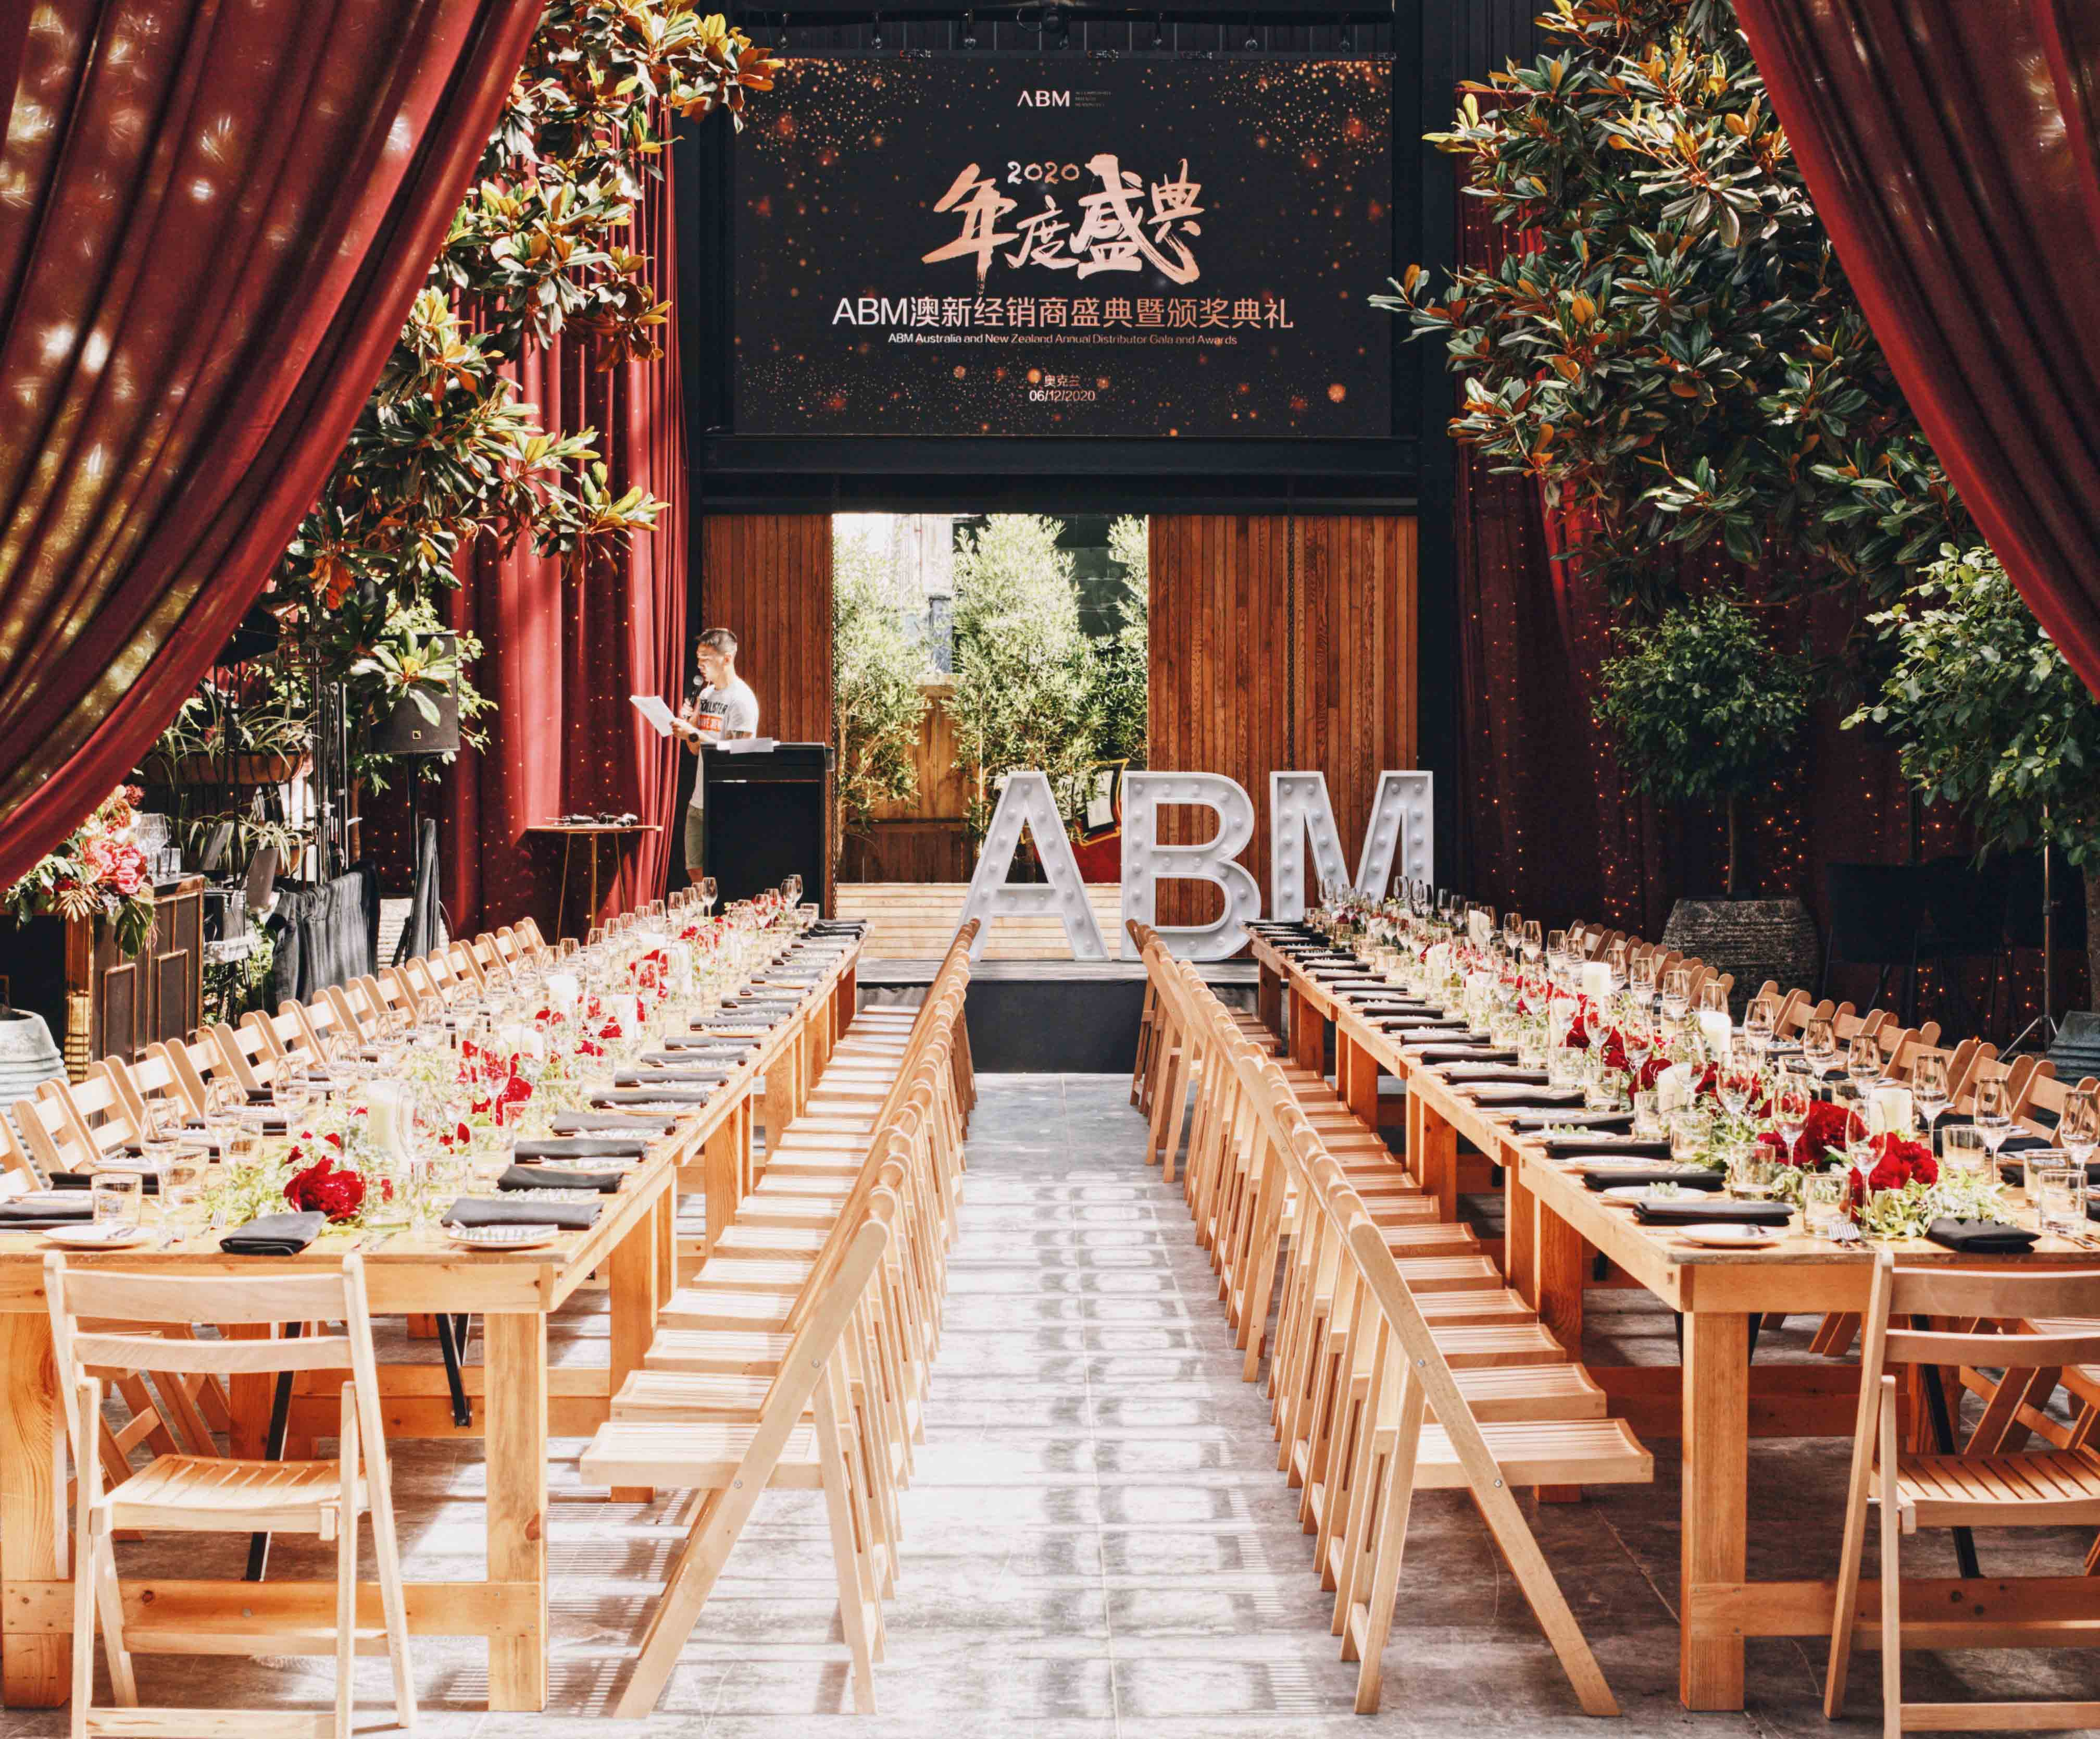 LED Letter Lights by Luxe Dream Event Hire / Table Runner Florals by Luxe Dream Floral Studio